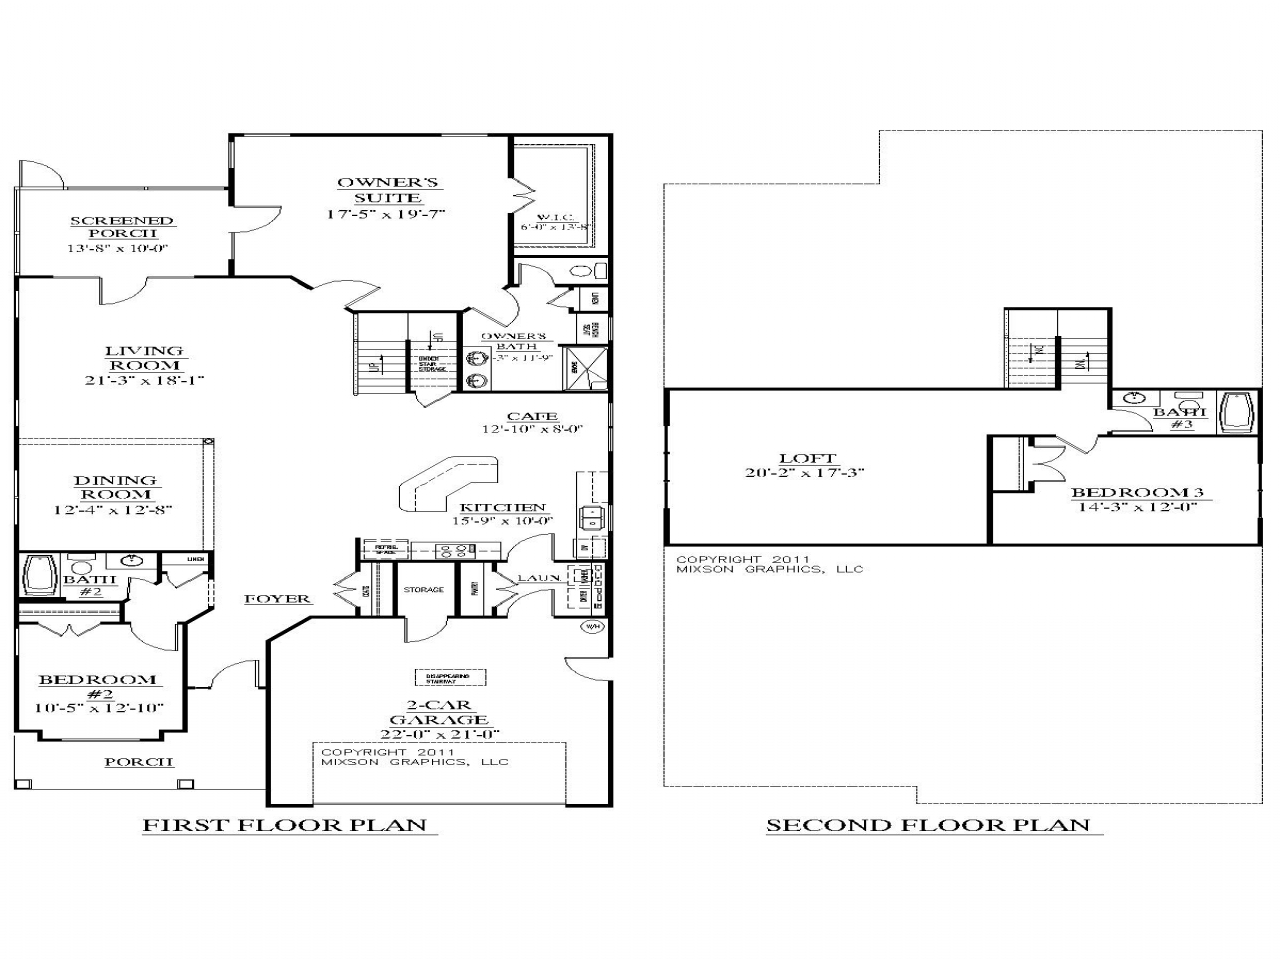 2 story house plans with bedrooms upstairs modern 2 story for 2 story house plans with loft